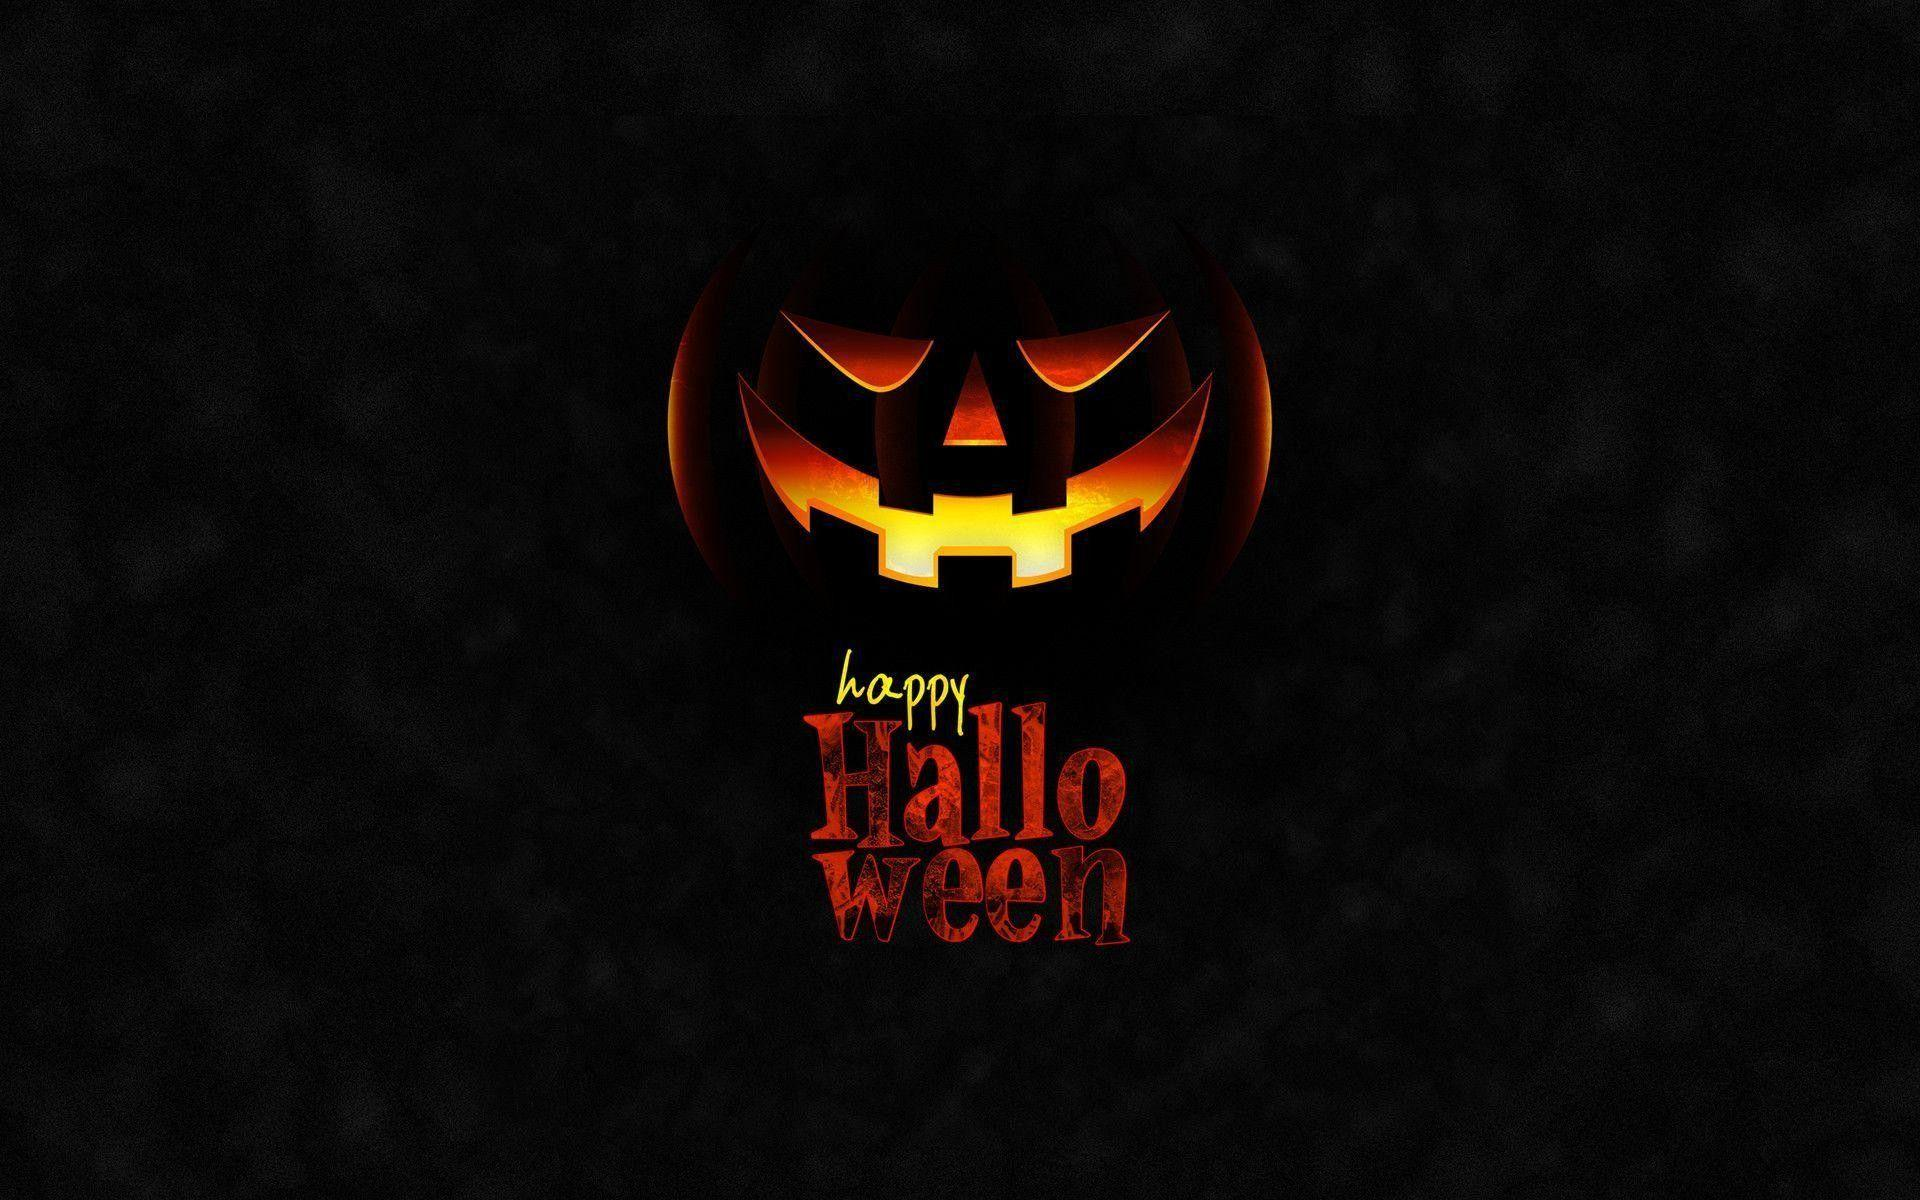 Happy Halloween Backgrounds 71+ - yese69.com - 4K Wallpapers World